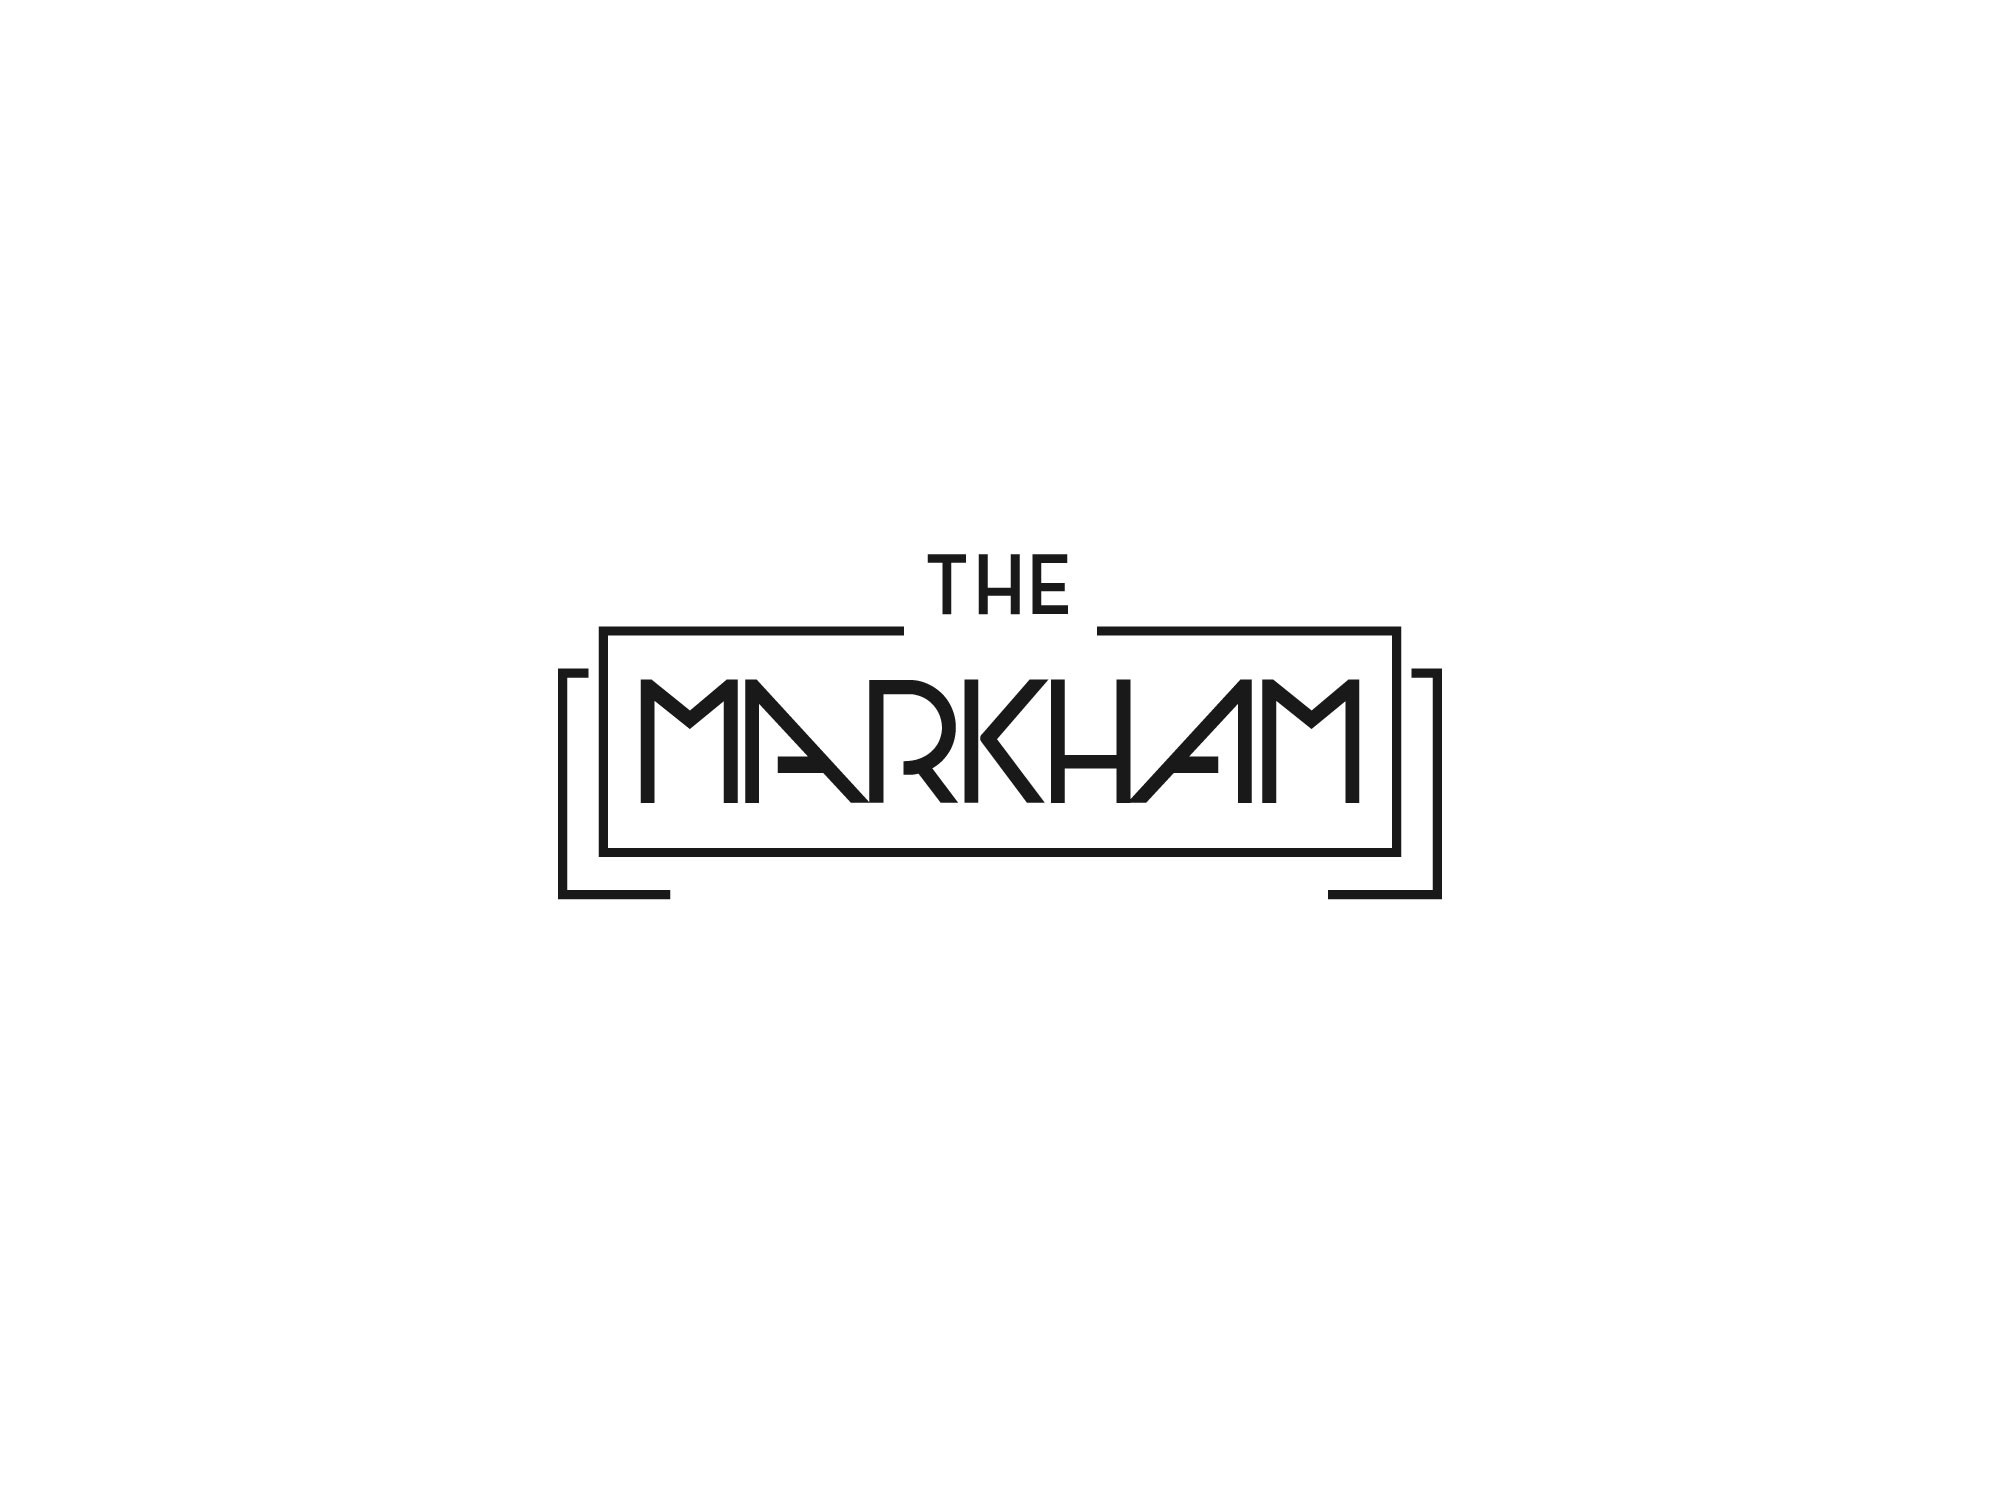 Bourbon, prohibition, speakeasy's, suits. Welcome to The Markham